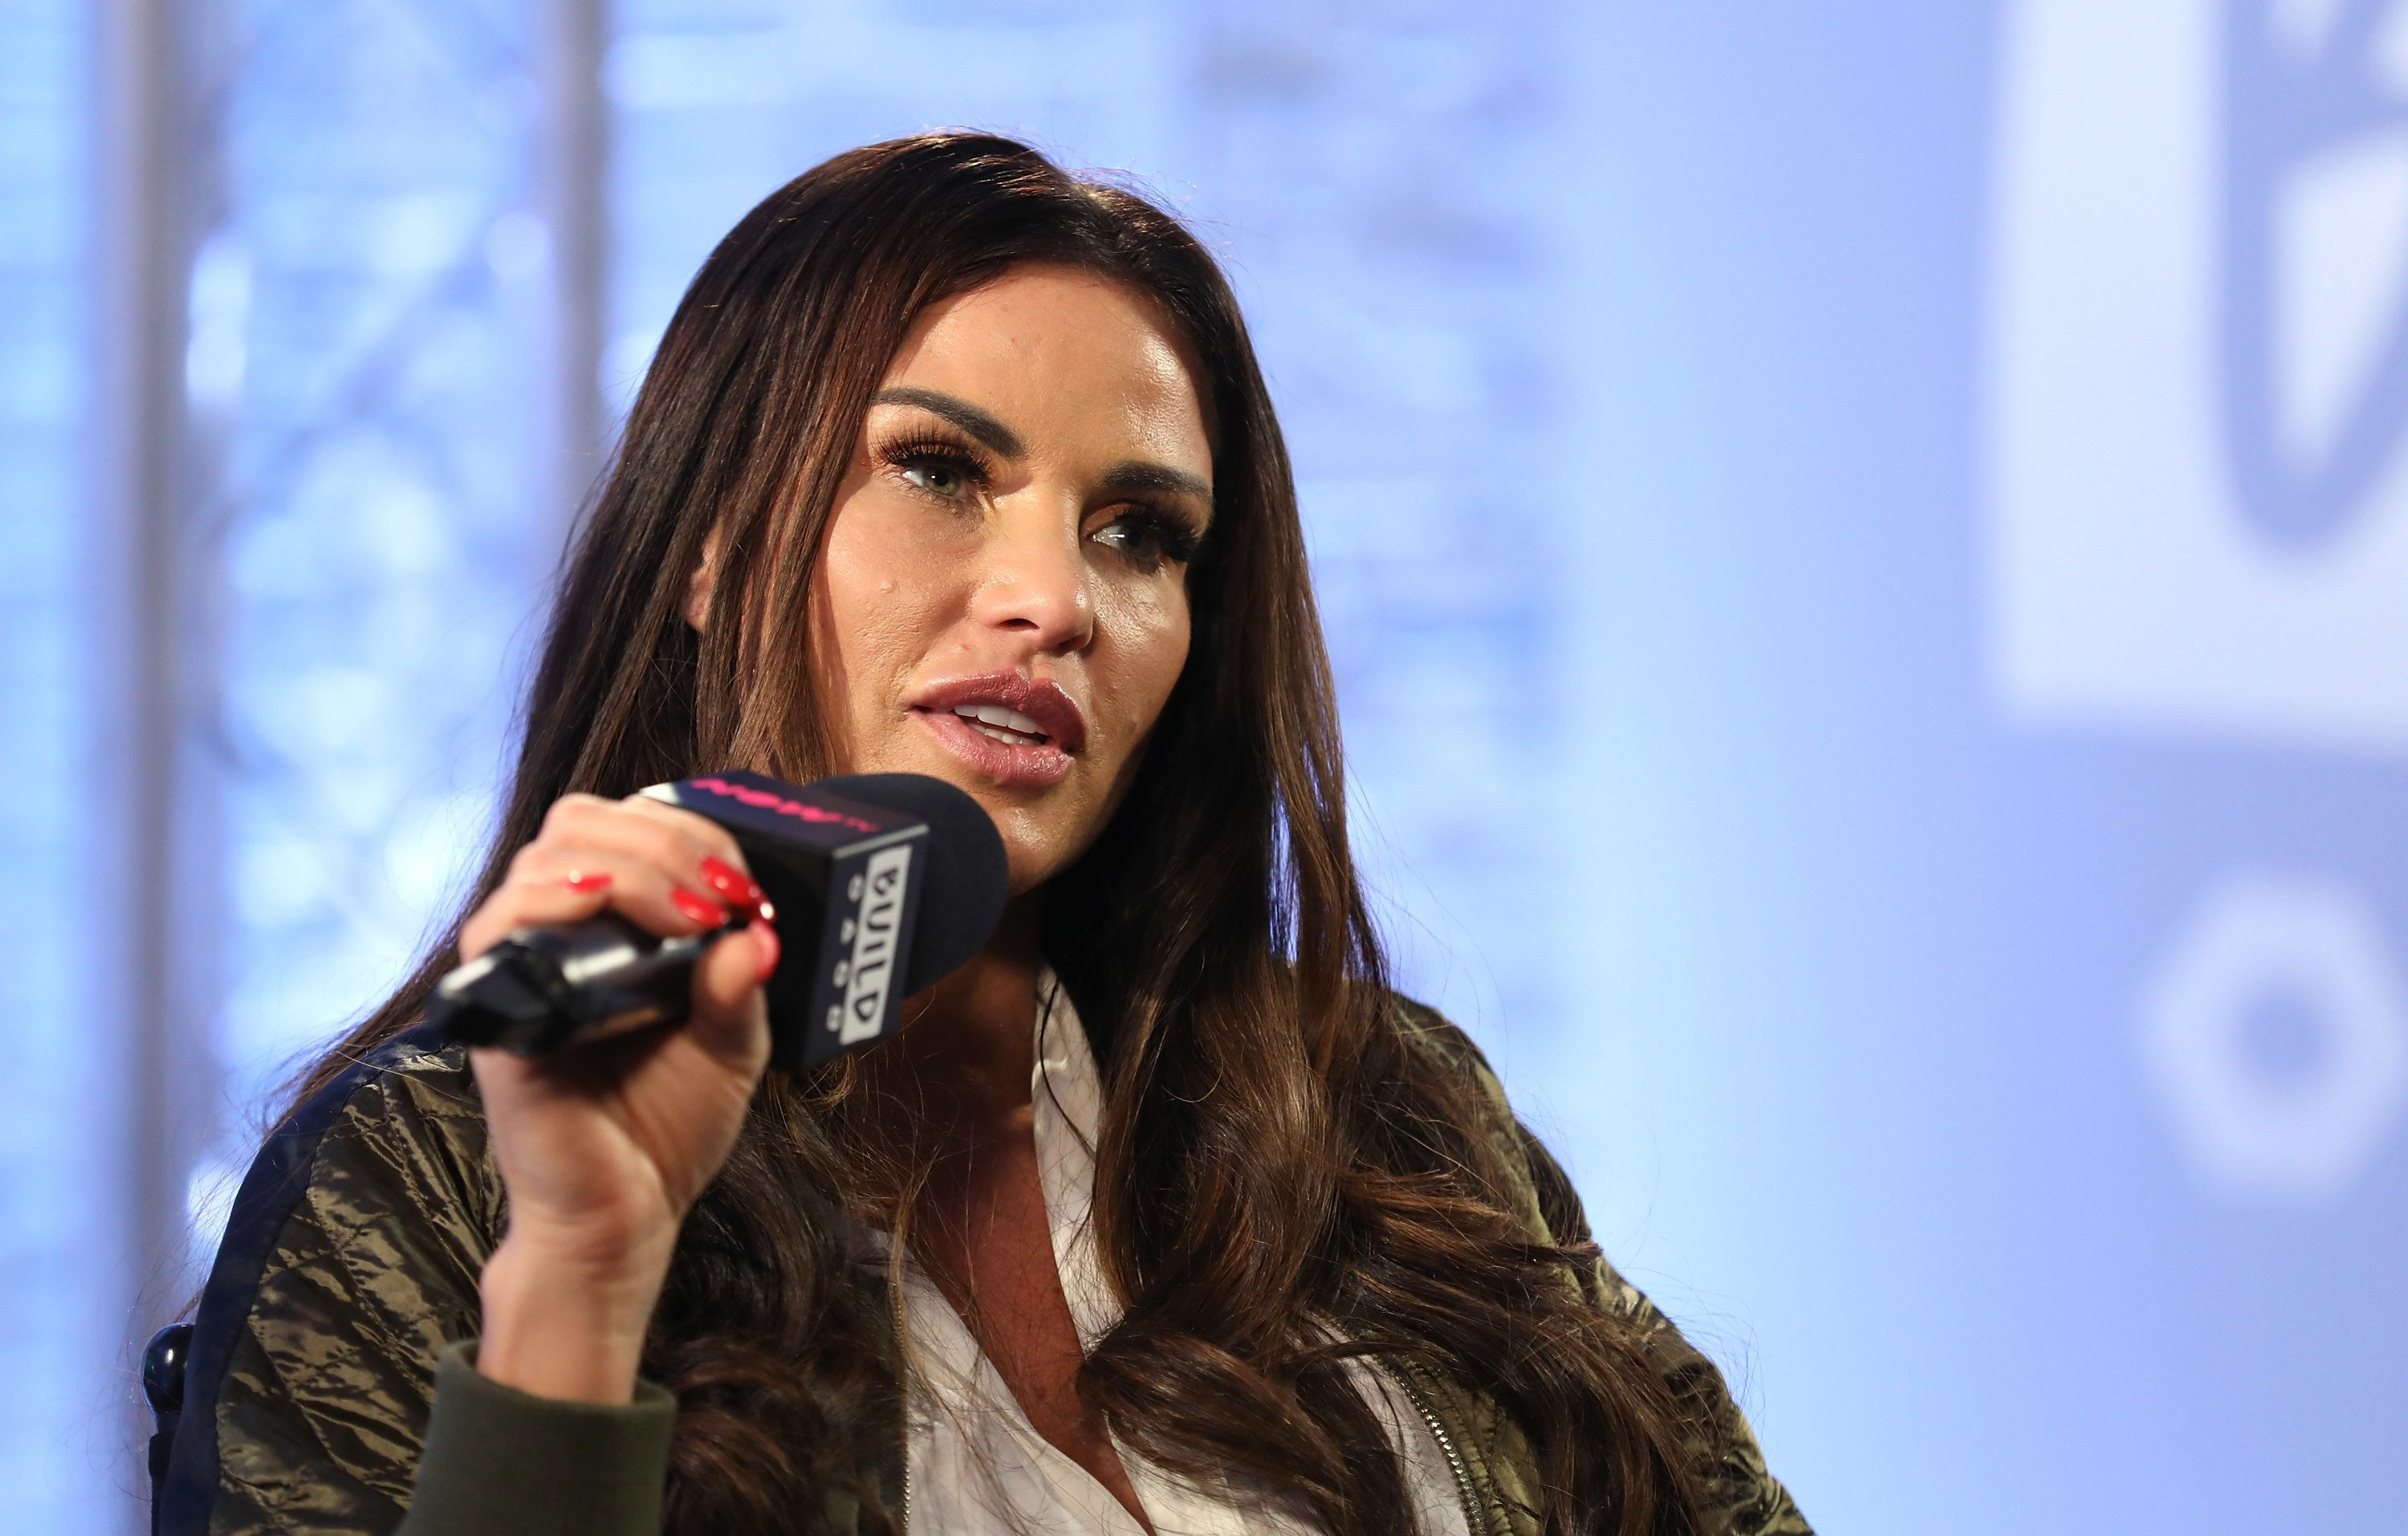 Katie Price Looking For A Surrogate To Carry Her Sixth